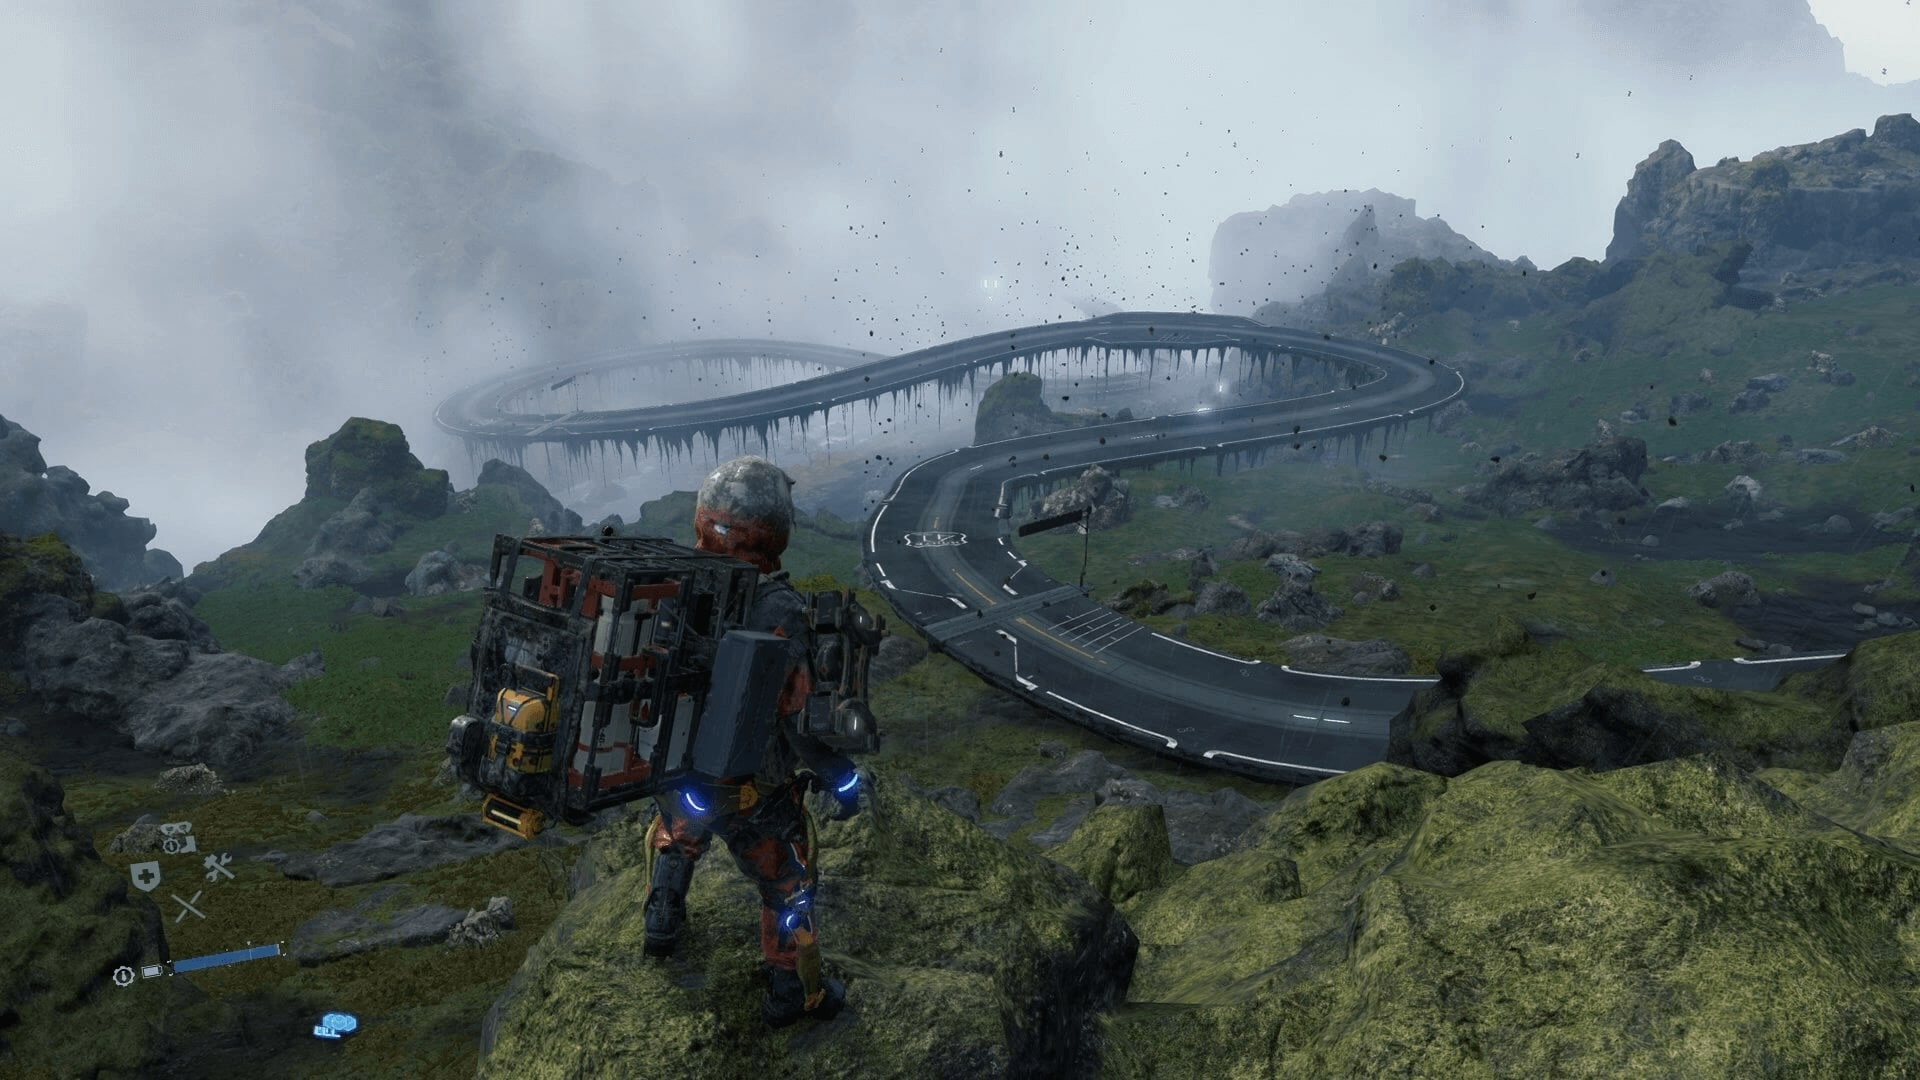 The chaotic and dangerous environment of Death Stranding turns into a convenient system that helps the player complete orders.